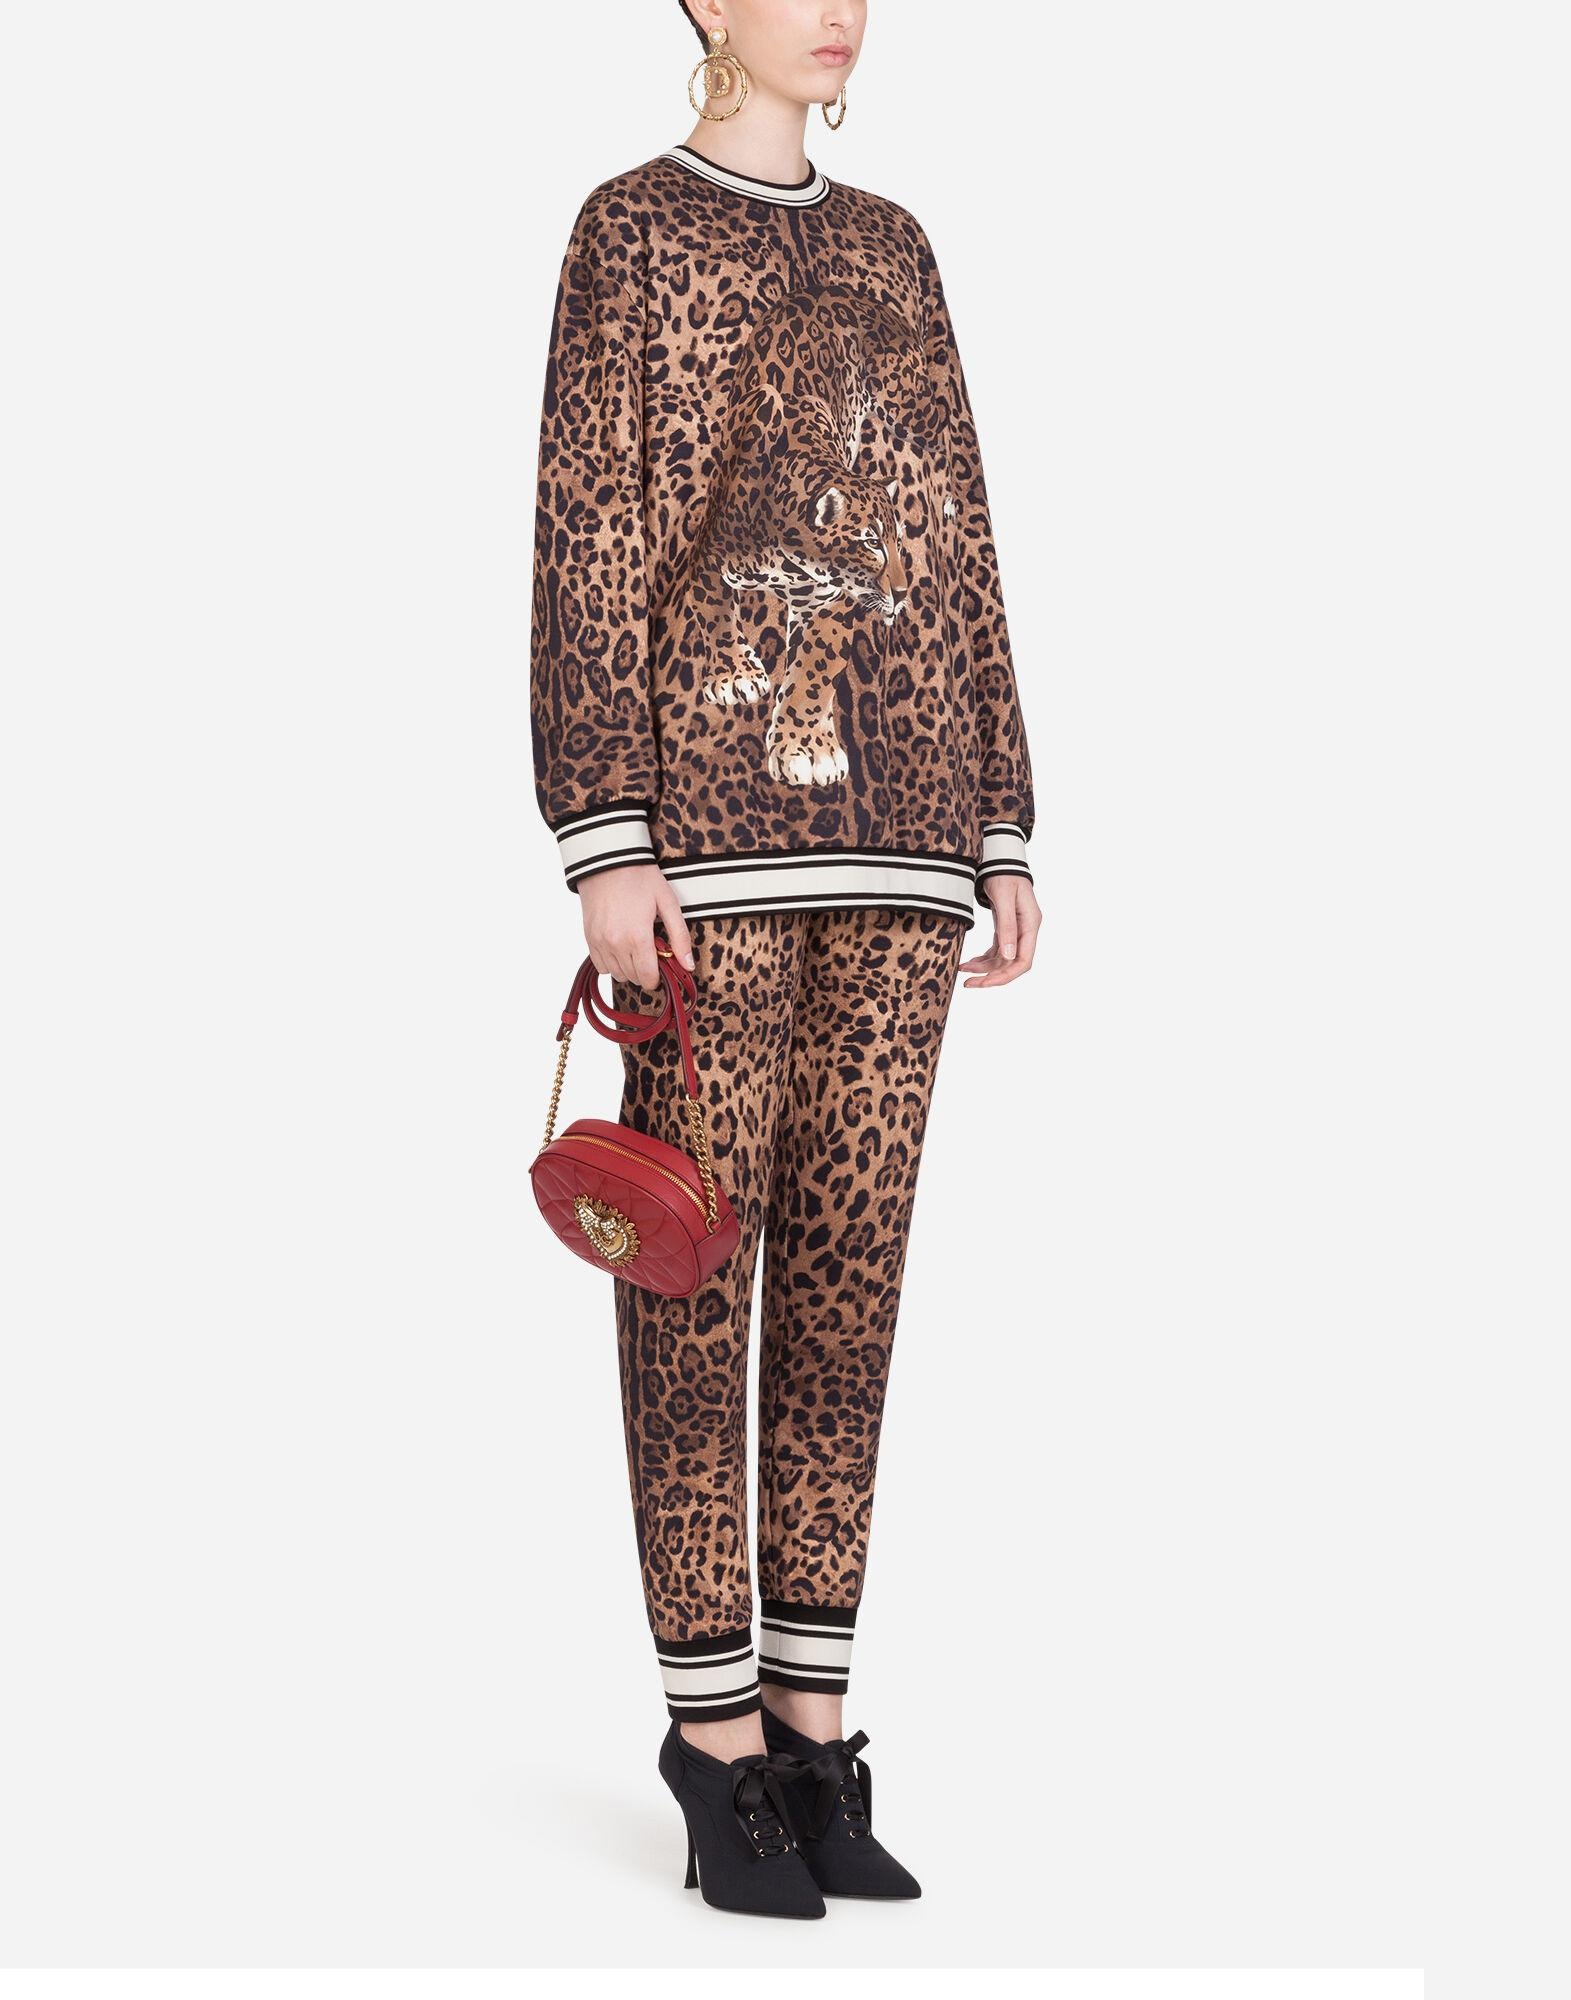 Jersey jogging pants with leopard print 2